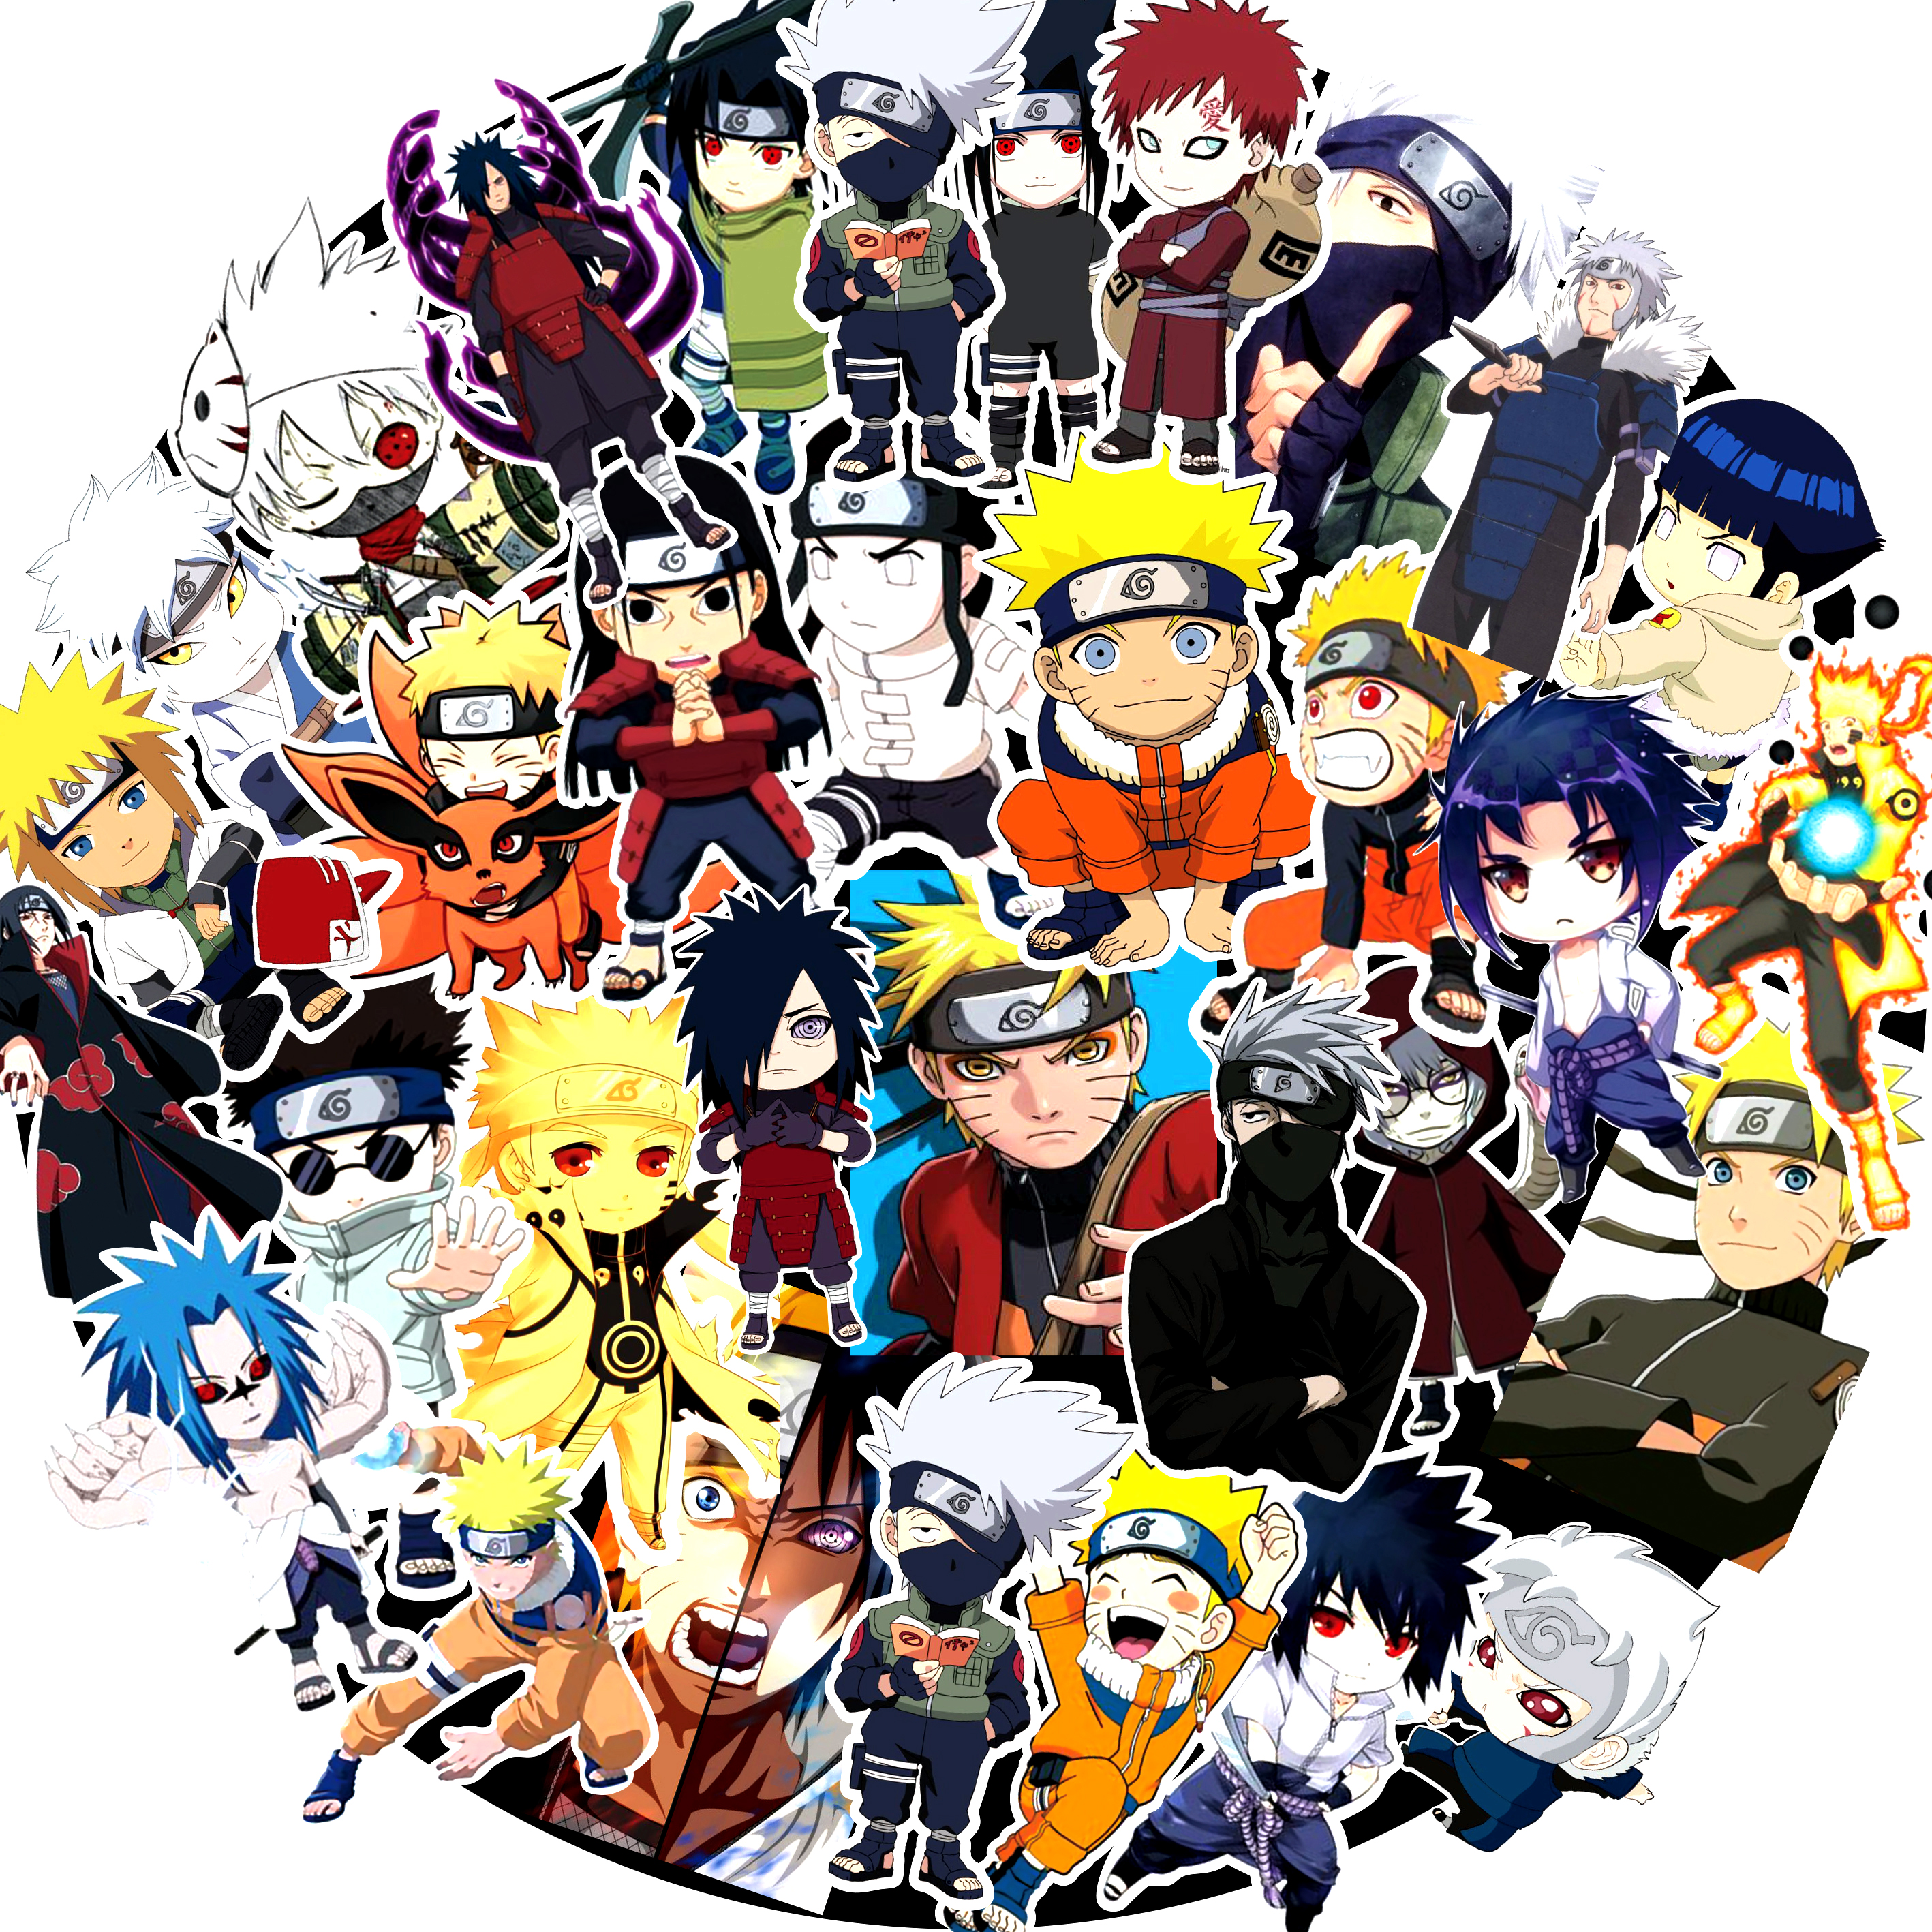 50Pcs/Set  Sticker Japan Anime Naruto Stickers Cartoon For Snowboard Laptop Luggage Fridge Car- Styling Vinyl Decal Sticker